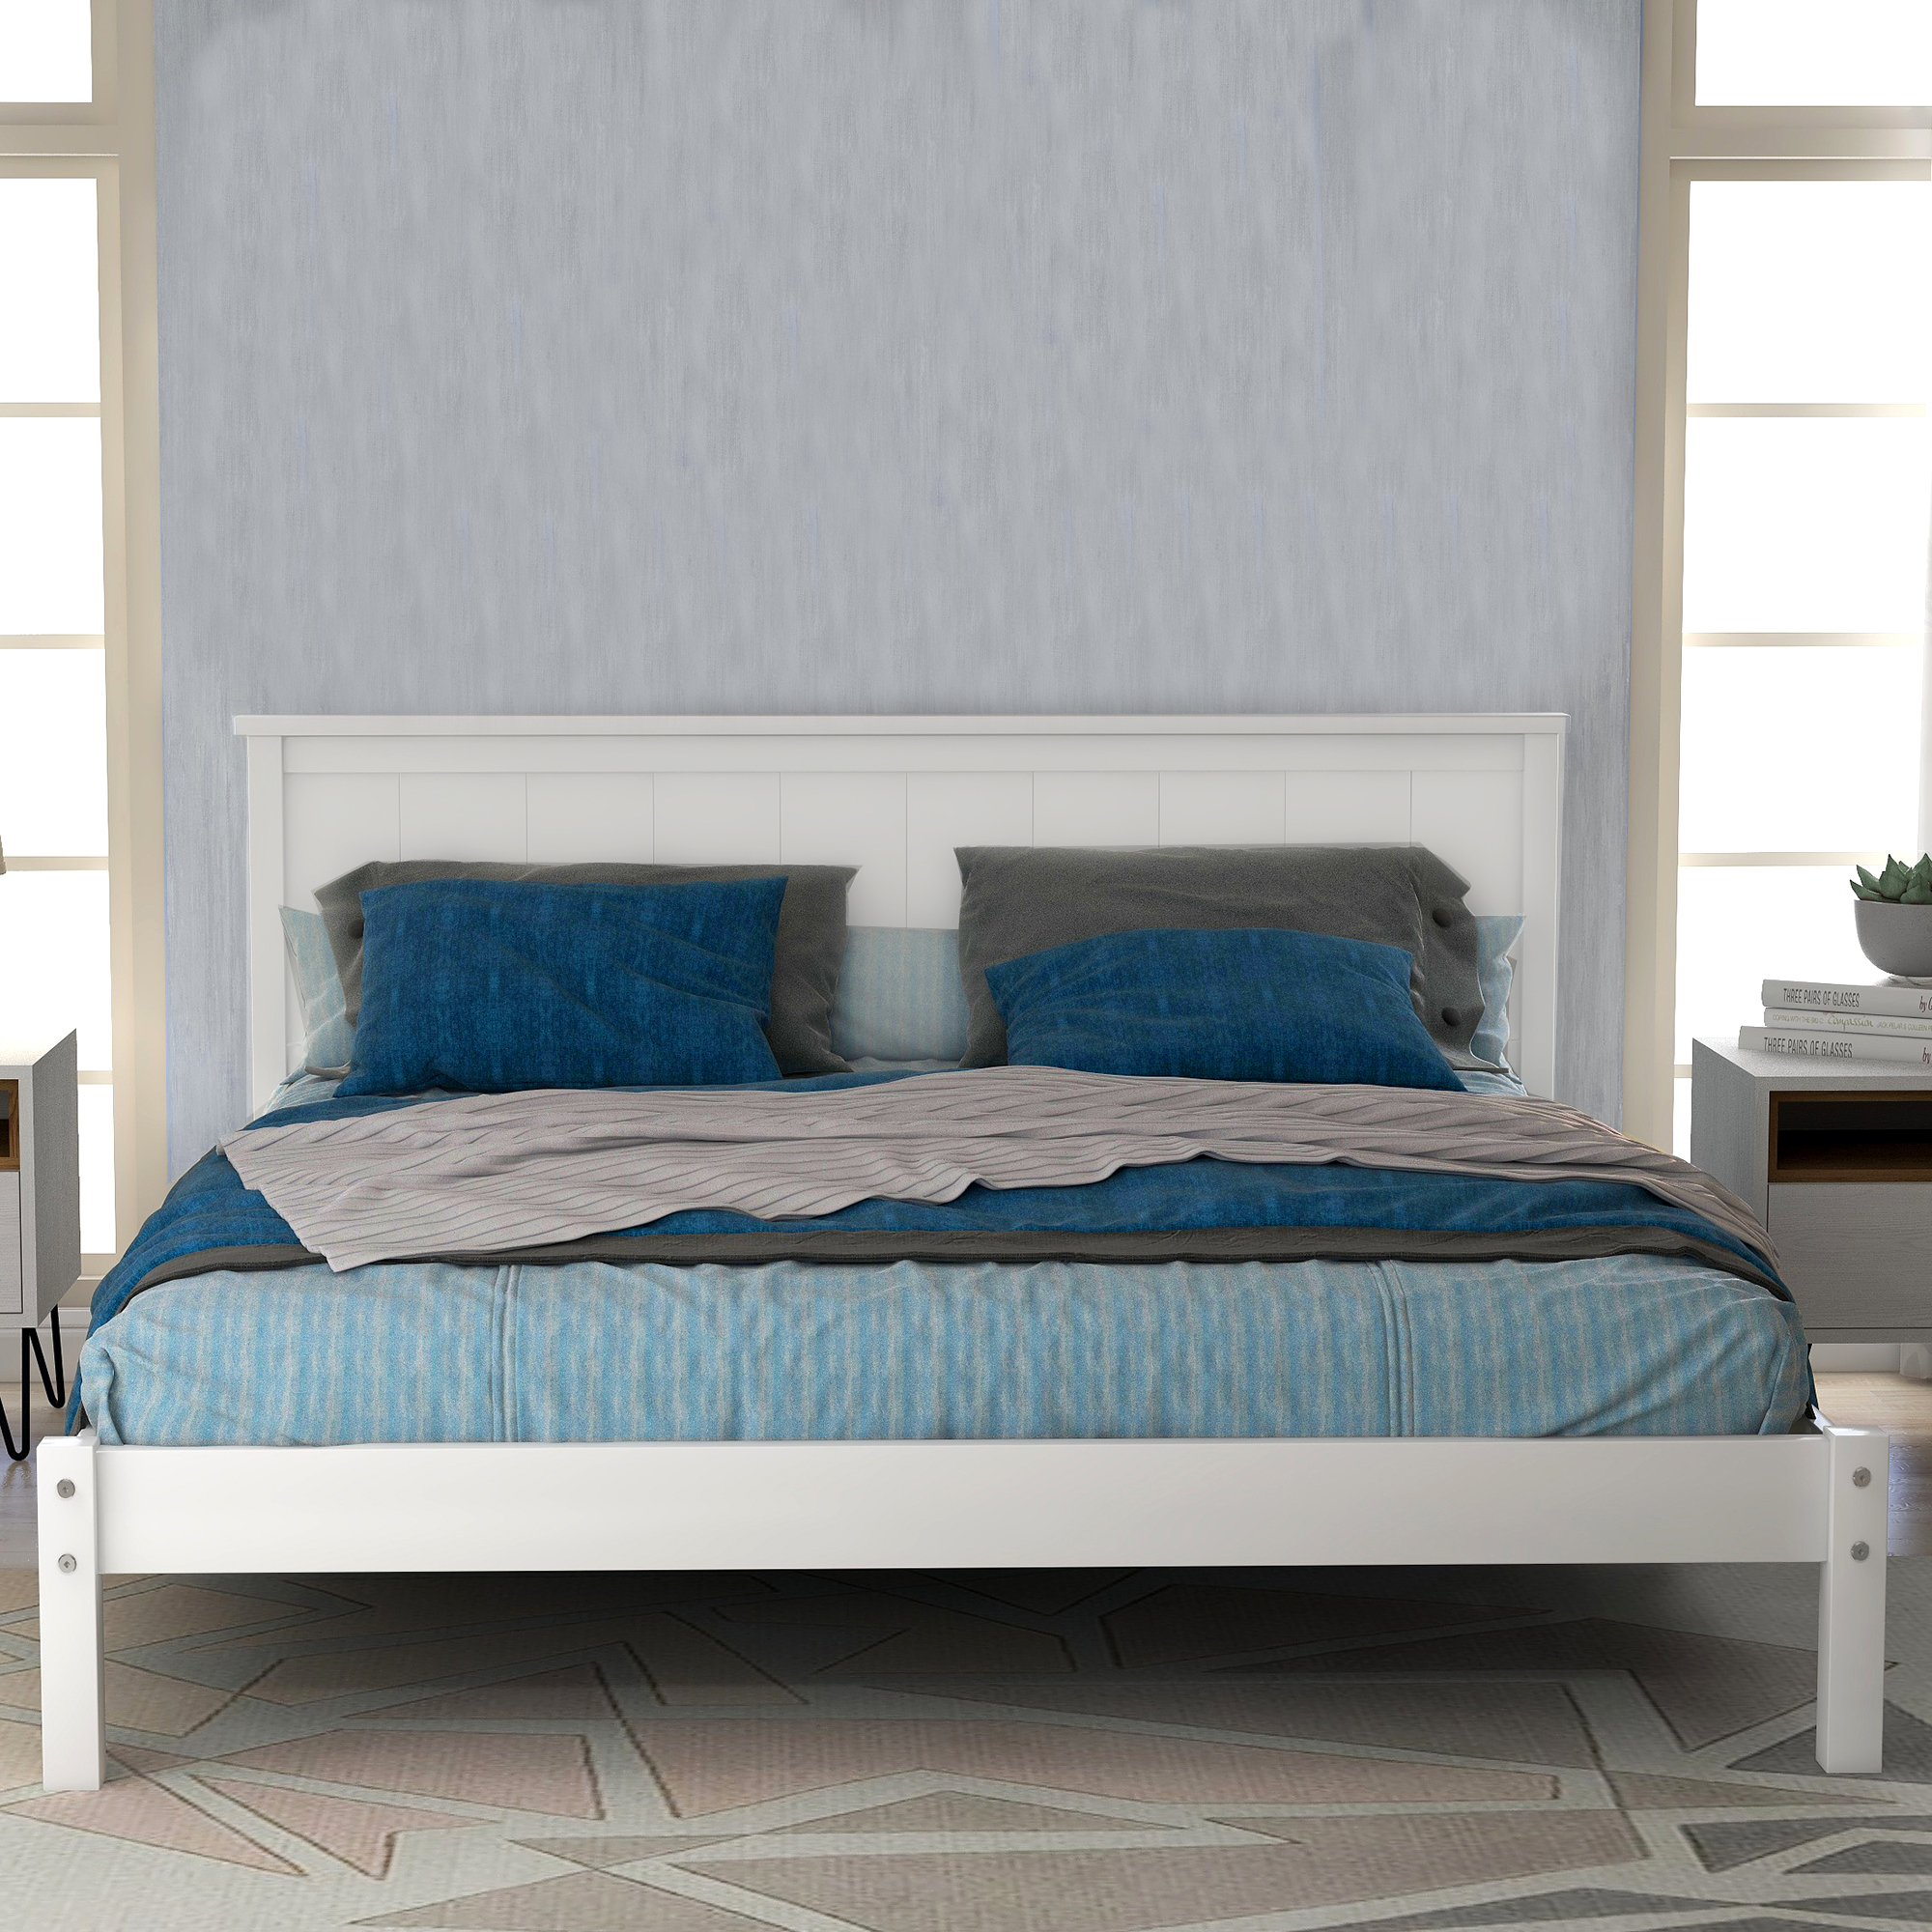 clearance queen bed frames for kids newest heavy duty on walmart bedroom furniture clearance id=74387